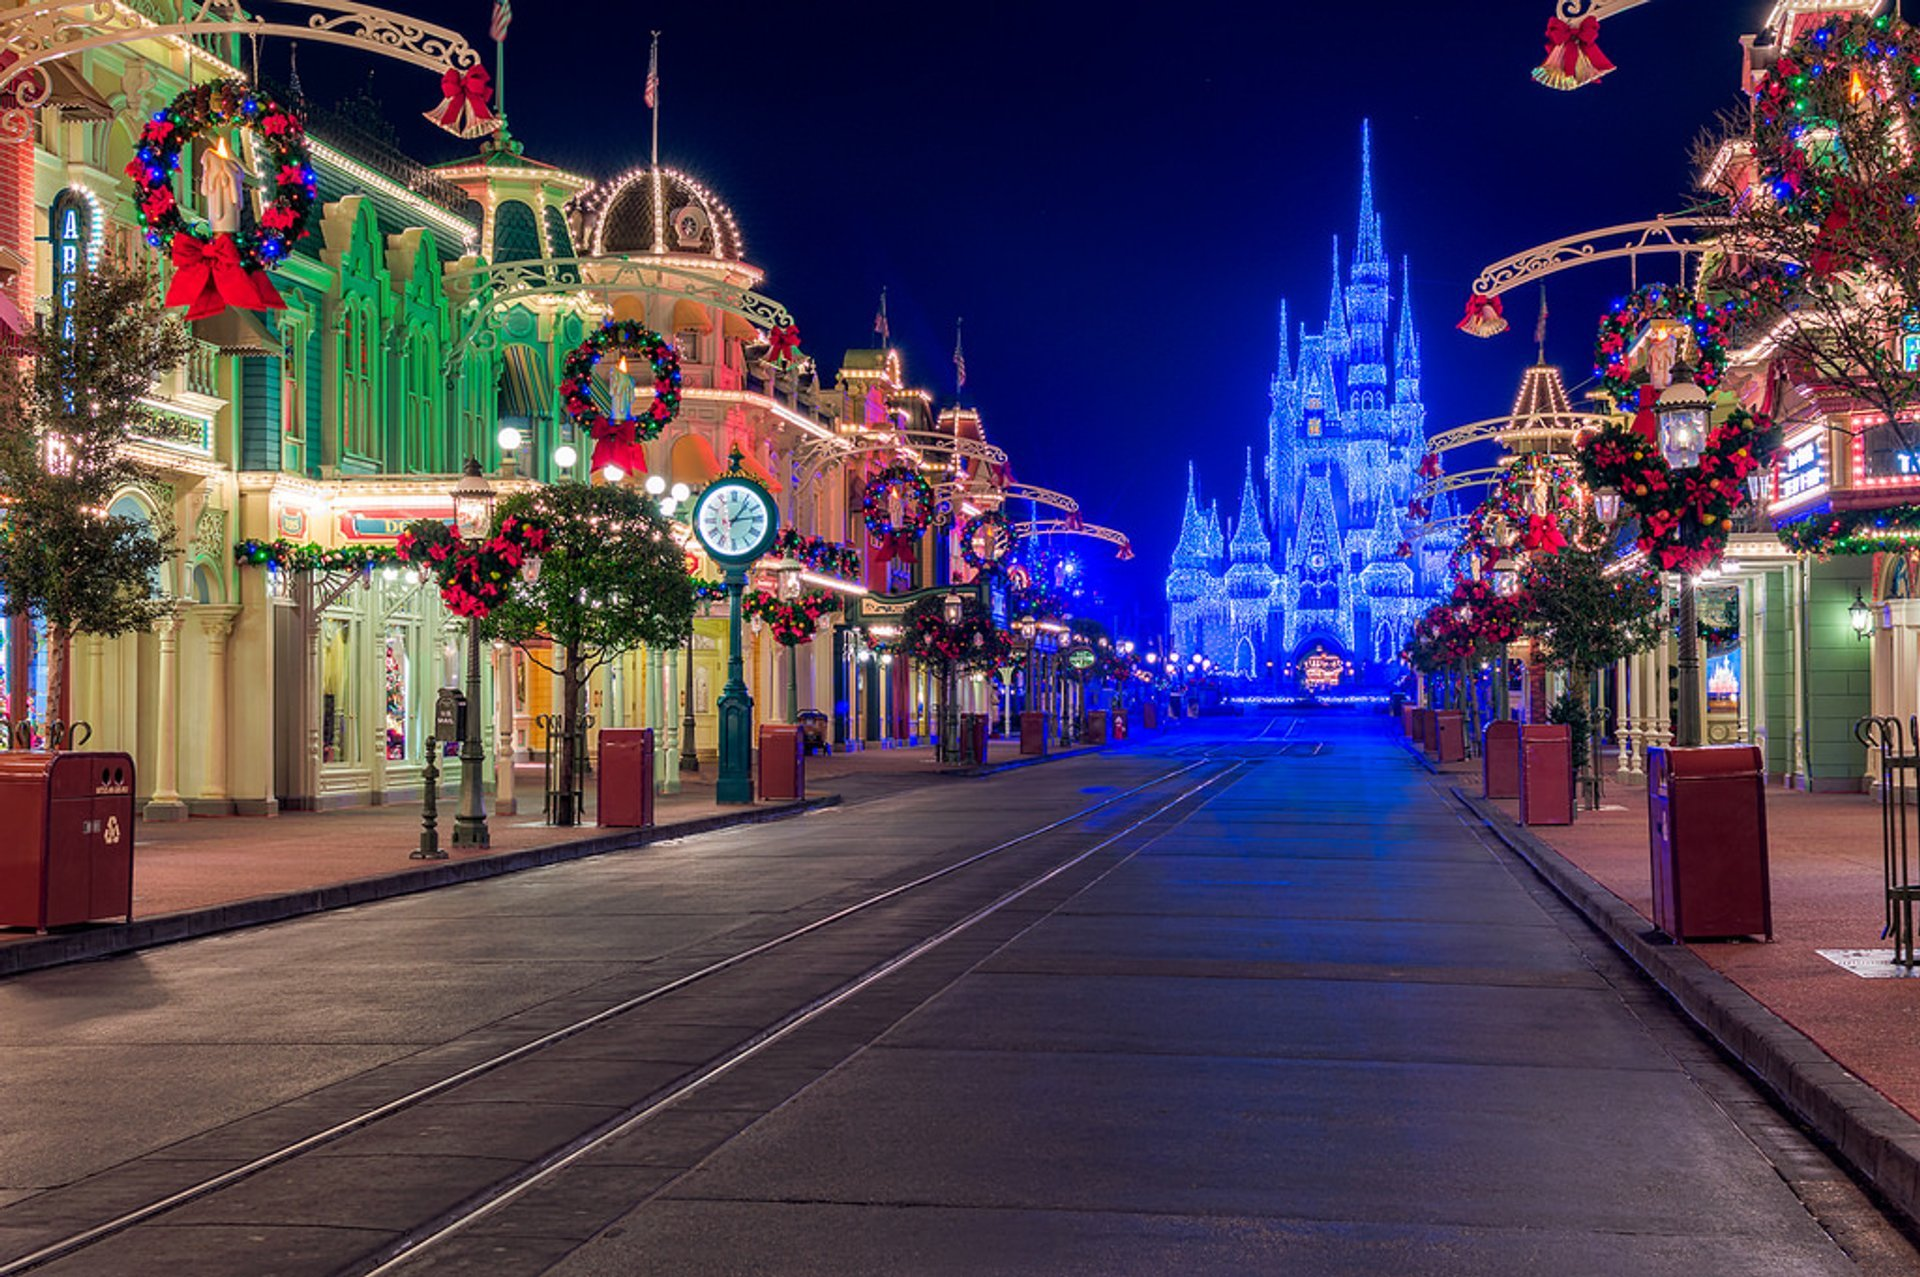 Christmas In Florida Images.Christmas At Disney World 2019 2020 In Florida Dates Map